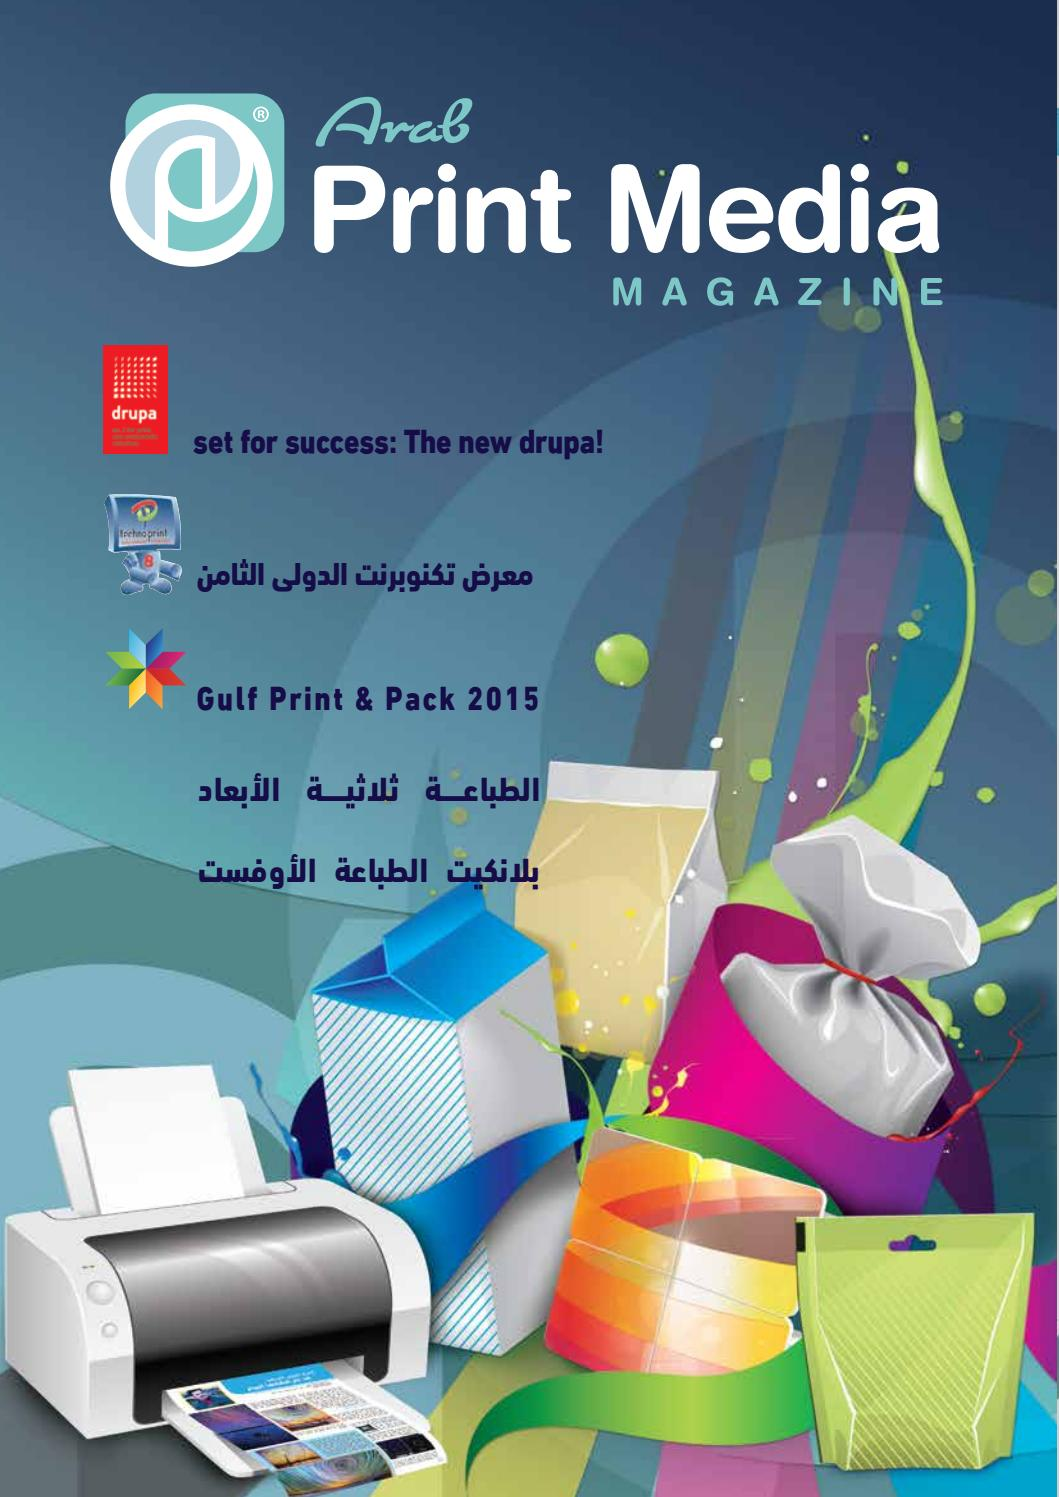 103238d7b Apm3 by Arab Print Media - issuu